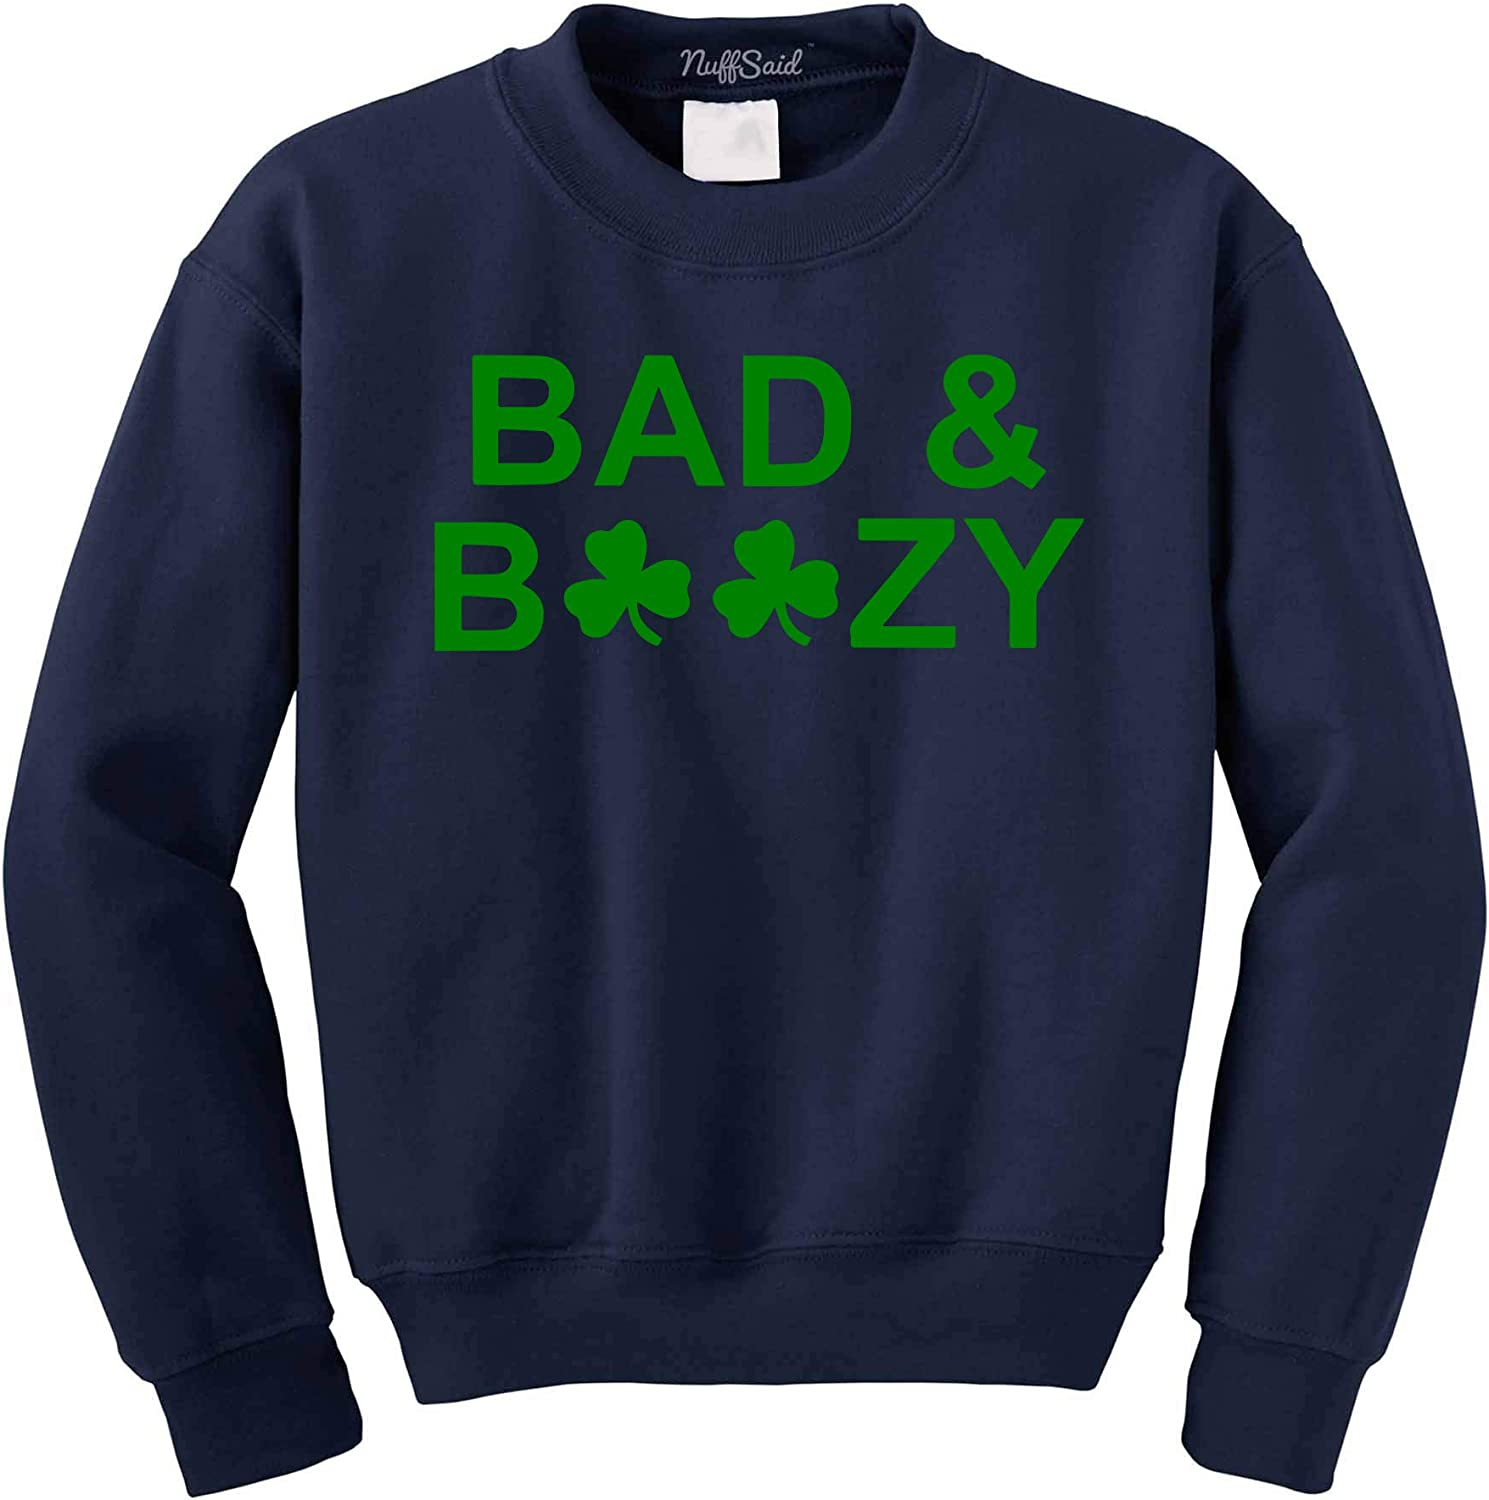 Paddy/'s Day Fck Me Liver Off Shoulder Sweatshirt for St Patrick/'s Day Funny Drunk Slouchy Oversized Sweater Funny Drinking Top for St